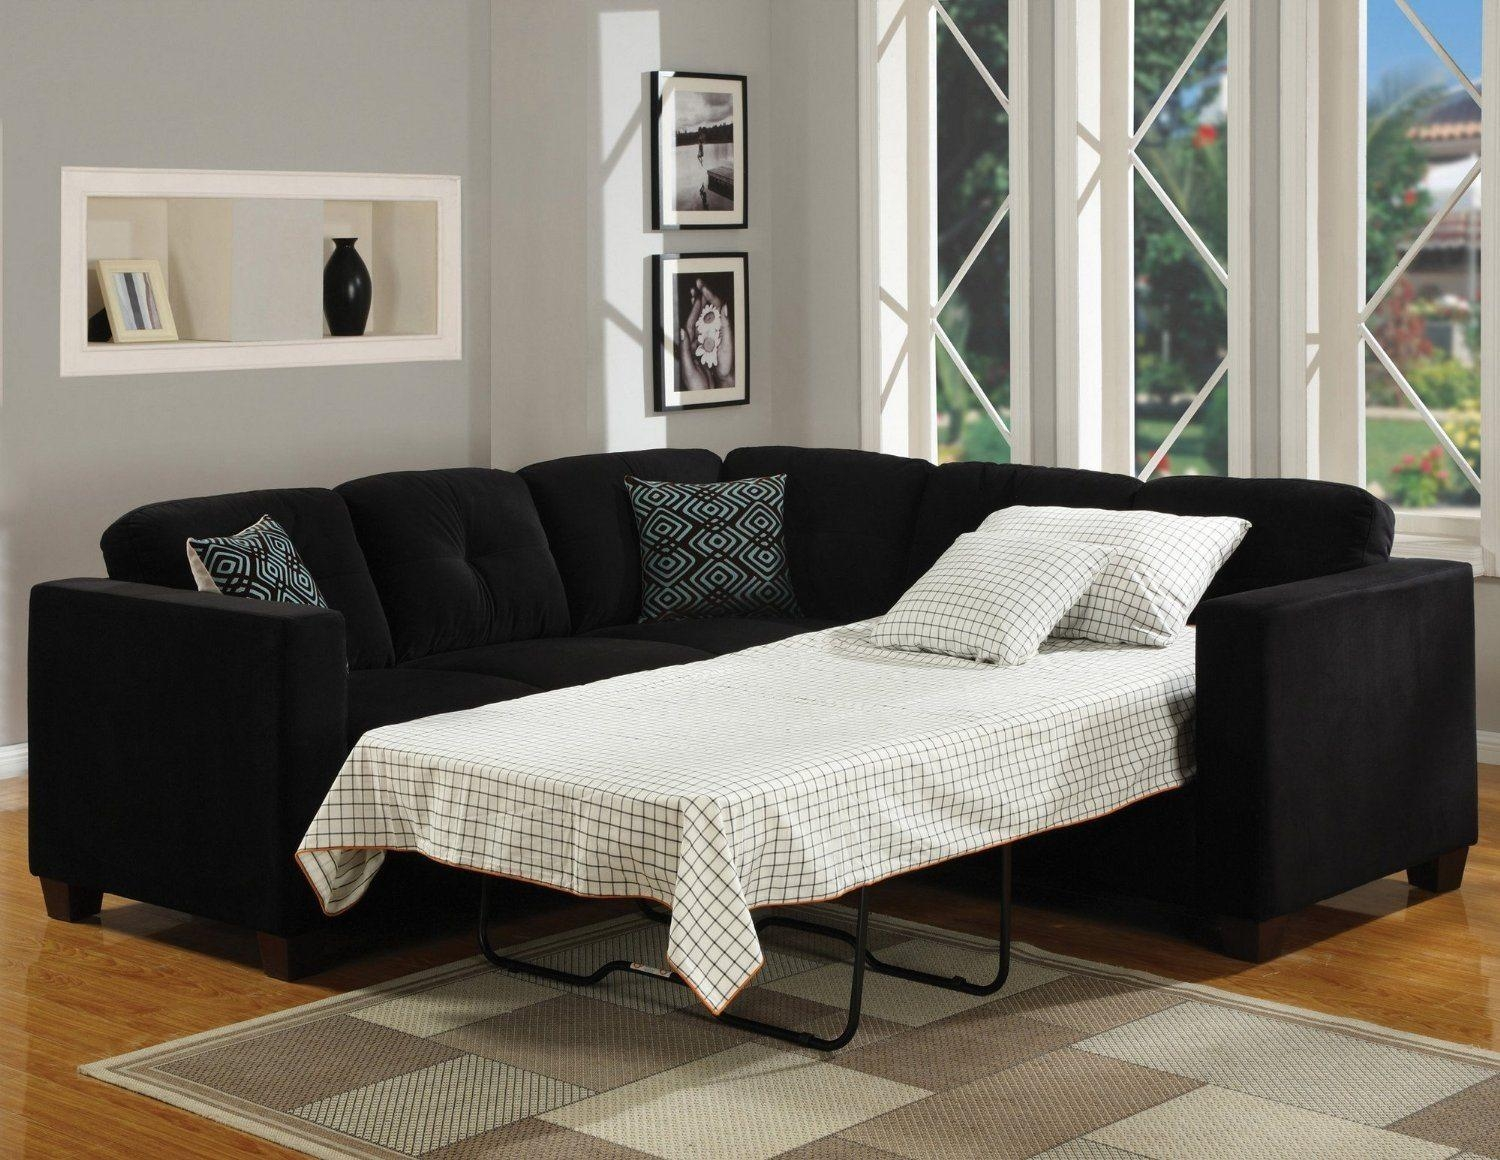 Bedroom: Exquisite Amour Sectional Couch With Pull Out Bed For Pertaining To Sleeper Sectional Sofas (View 15 of 20)